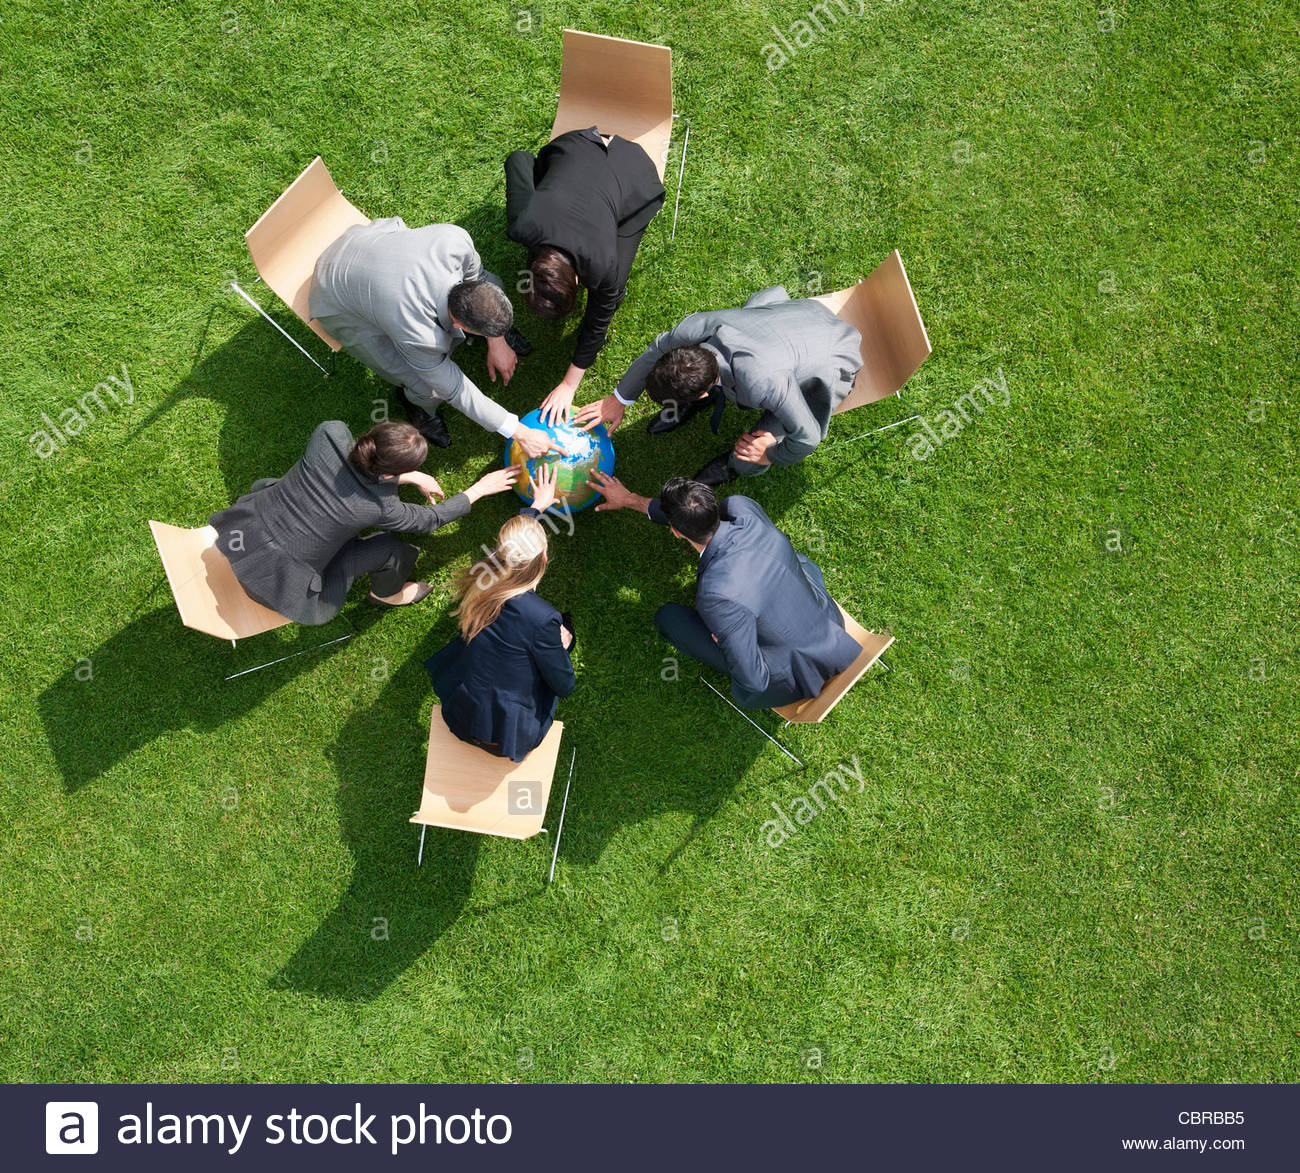 Business people working together outdoors - Stock Image